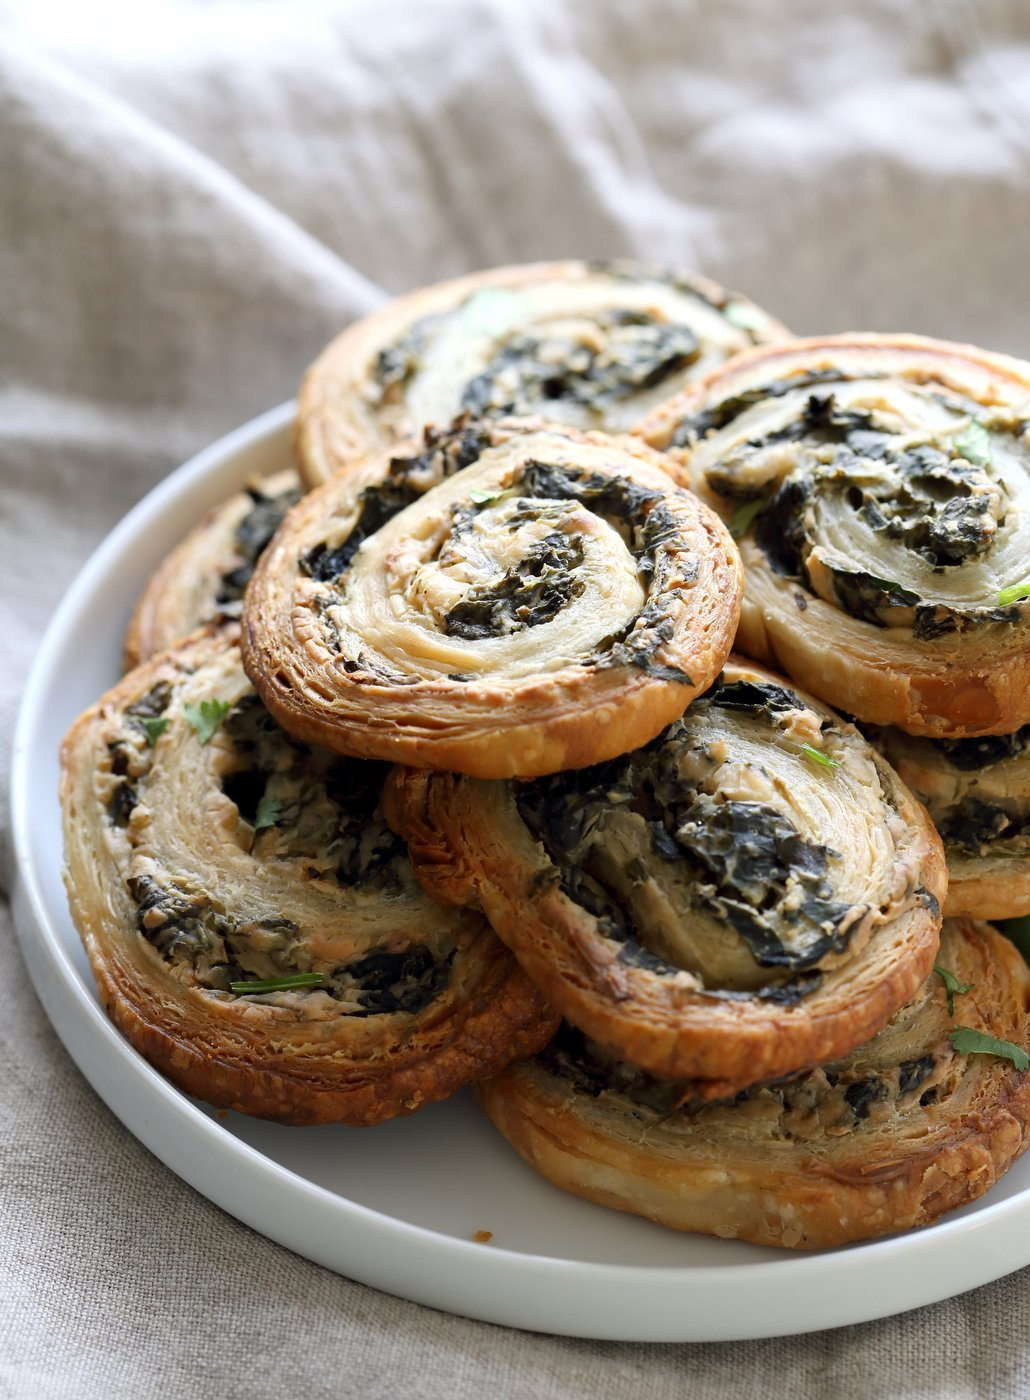 Vegan Spinach Pinwheels. Creamy cheesy Spinach dip spread on puff pastry, rolled, sliced and baked to make a great Snack. #Vegan #Soyfree #Recipe #veganricha | VeganRicha.com